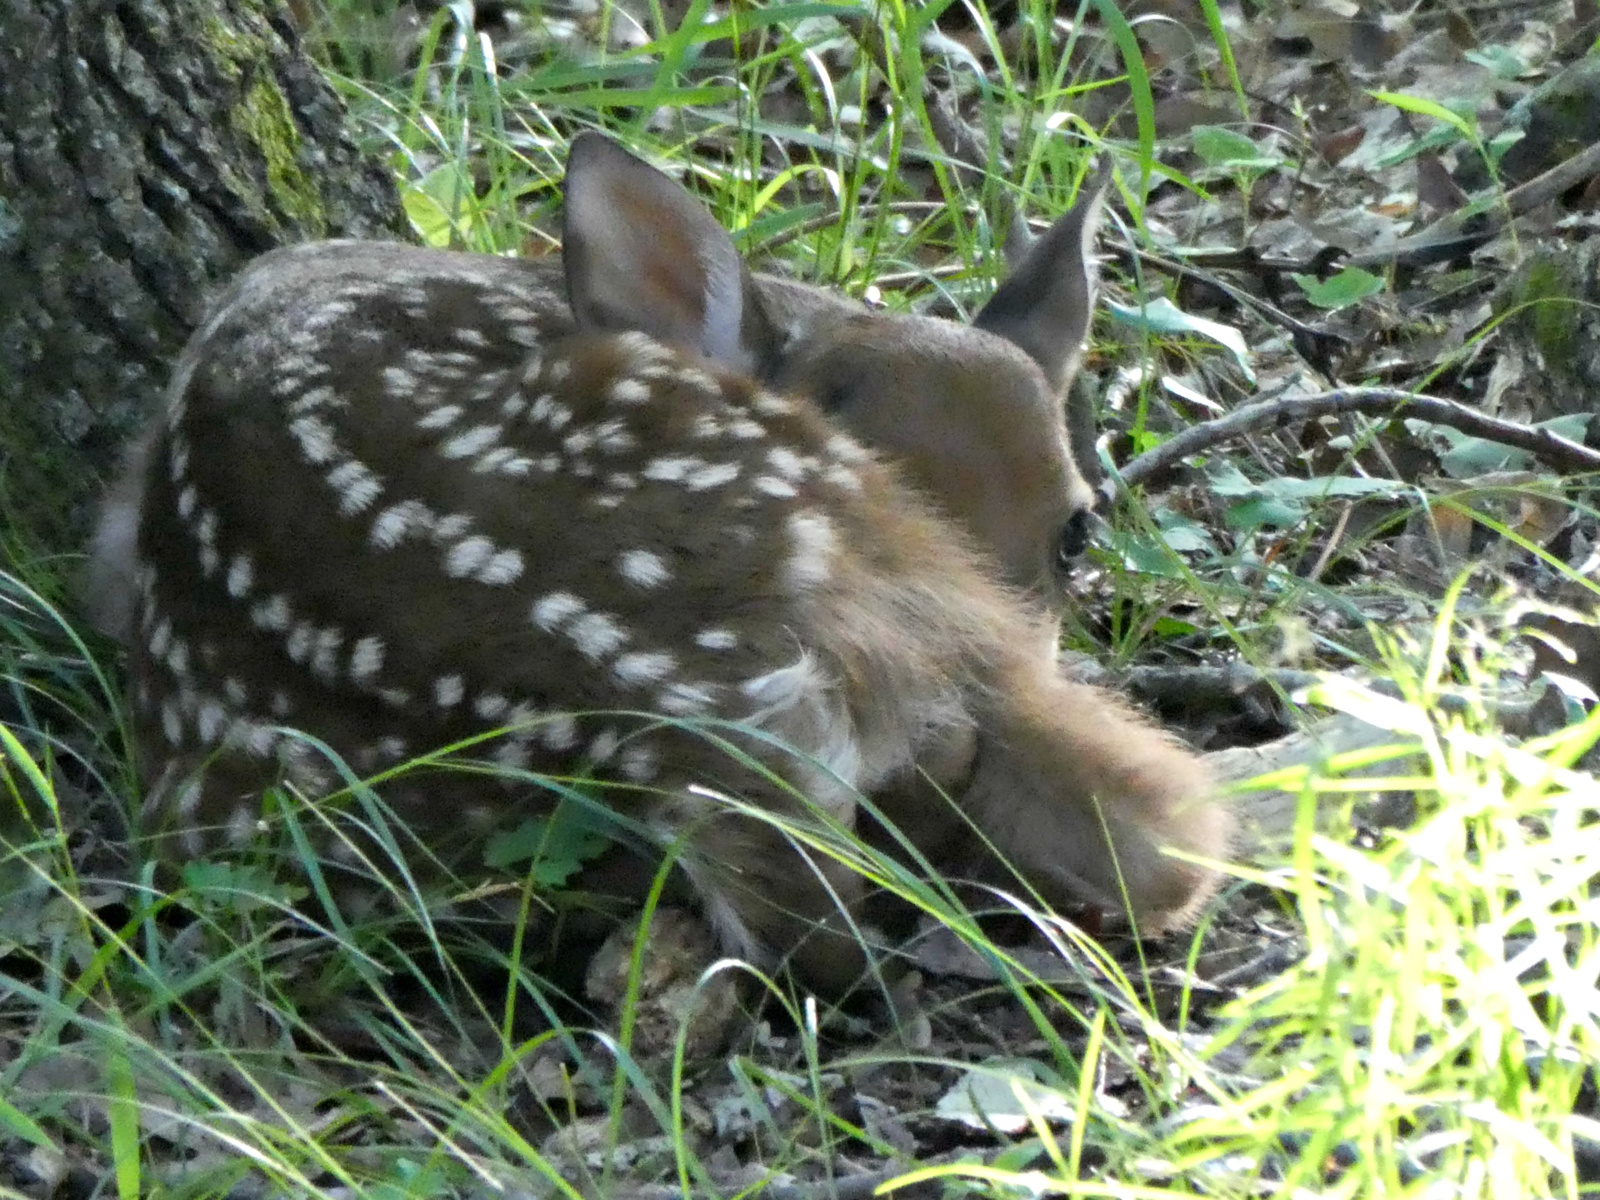 June 10, 2018 - Fawn in Bent Tree